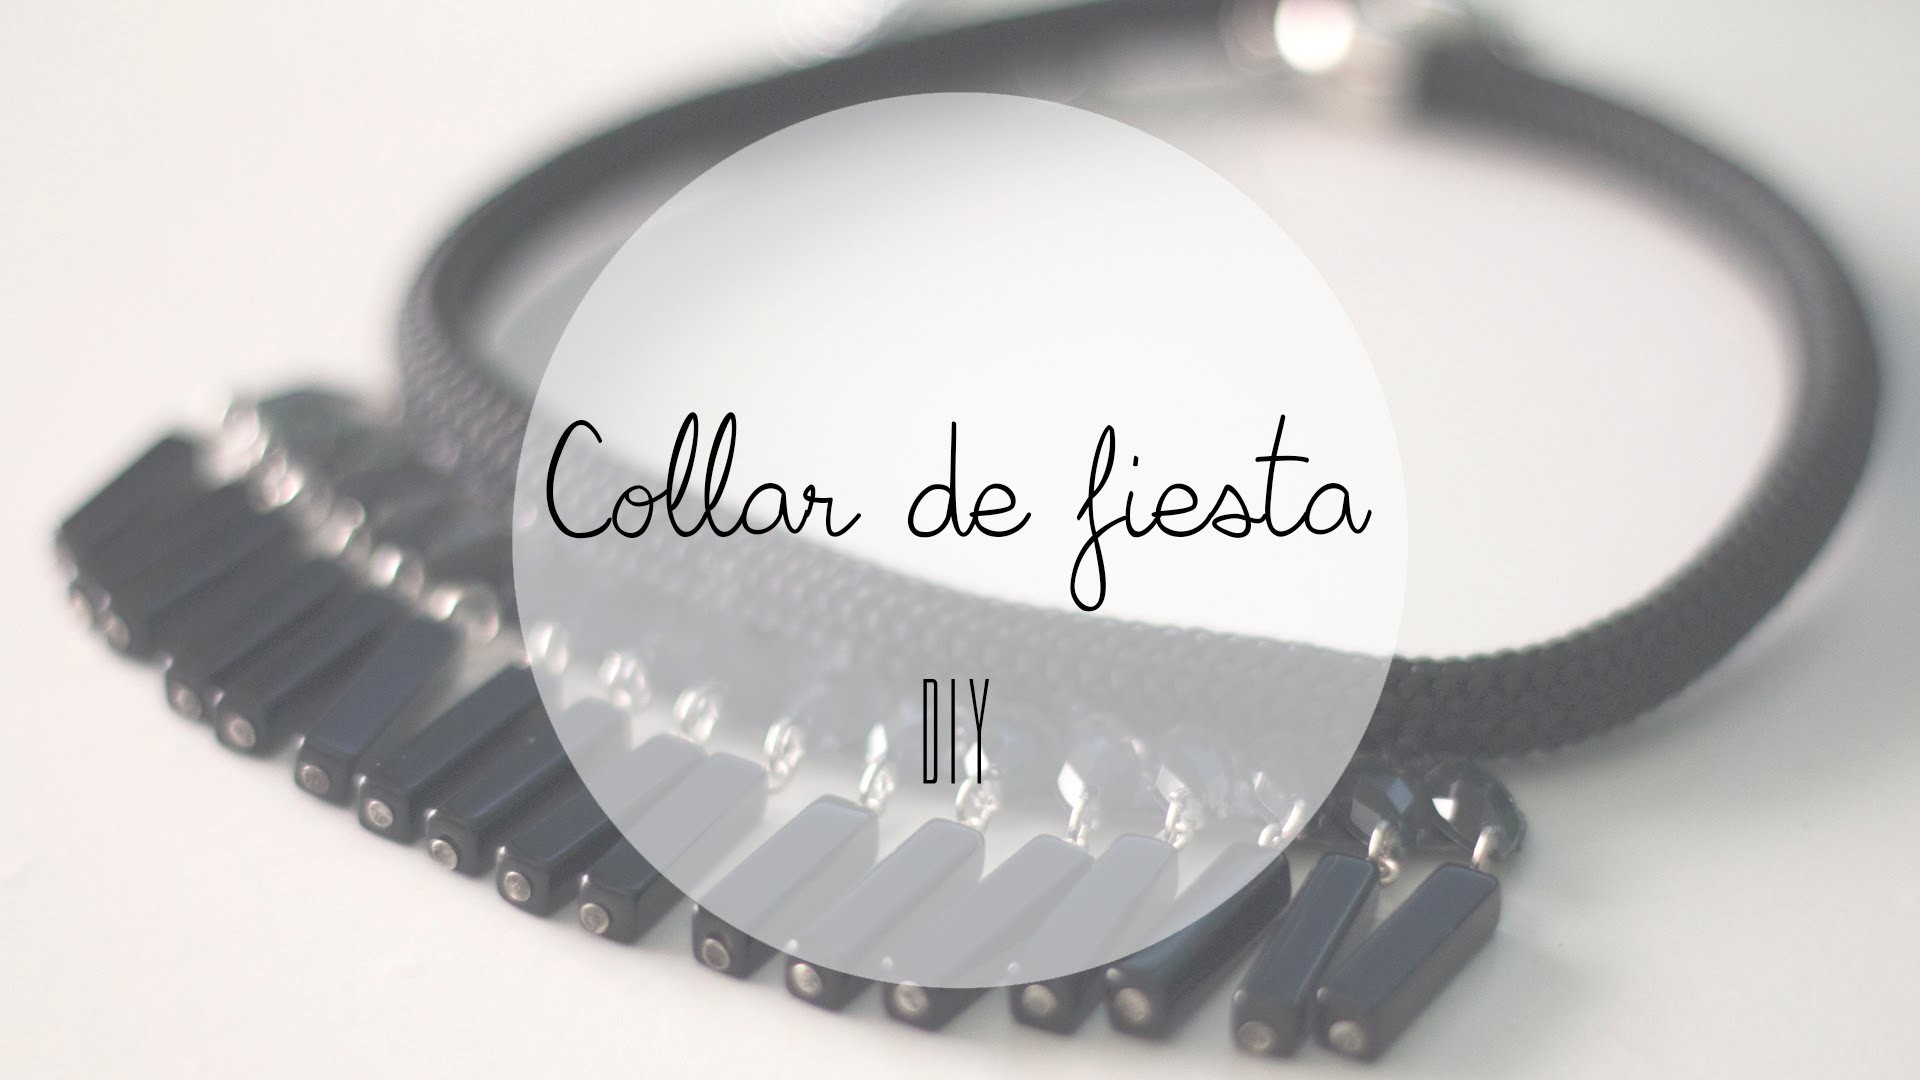 DIY: Collar de fiesta